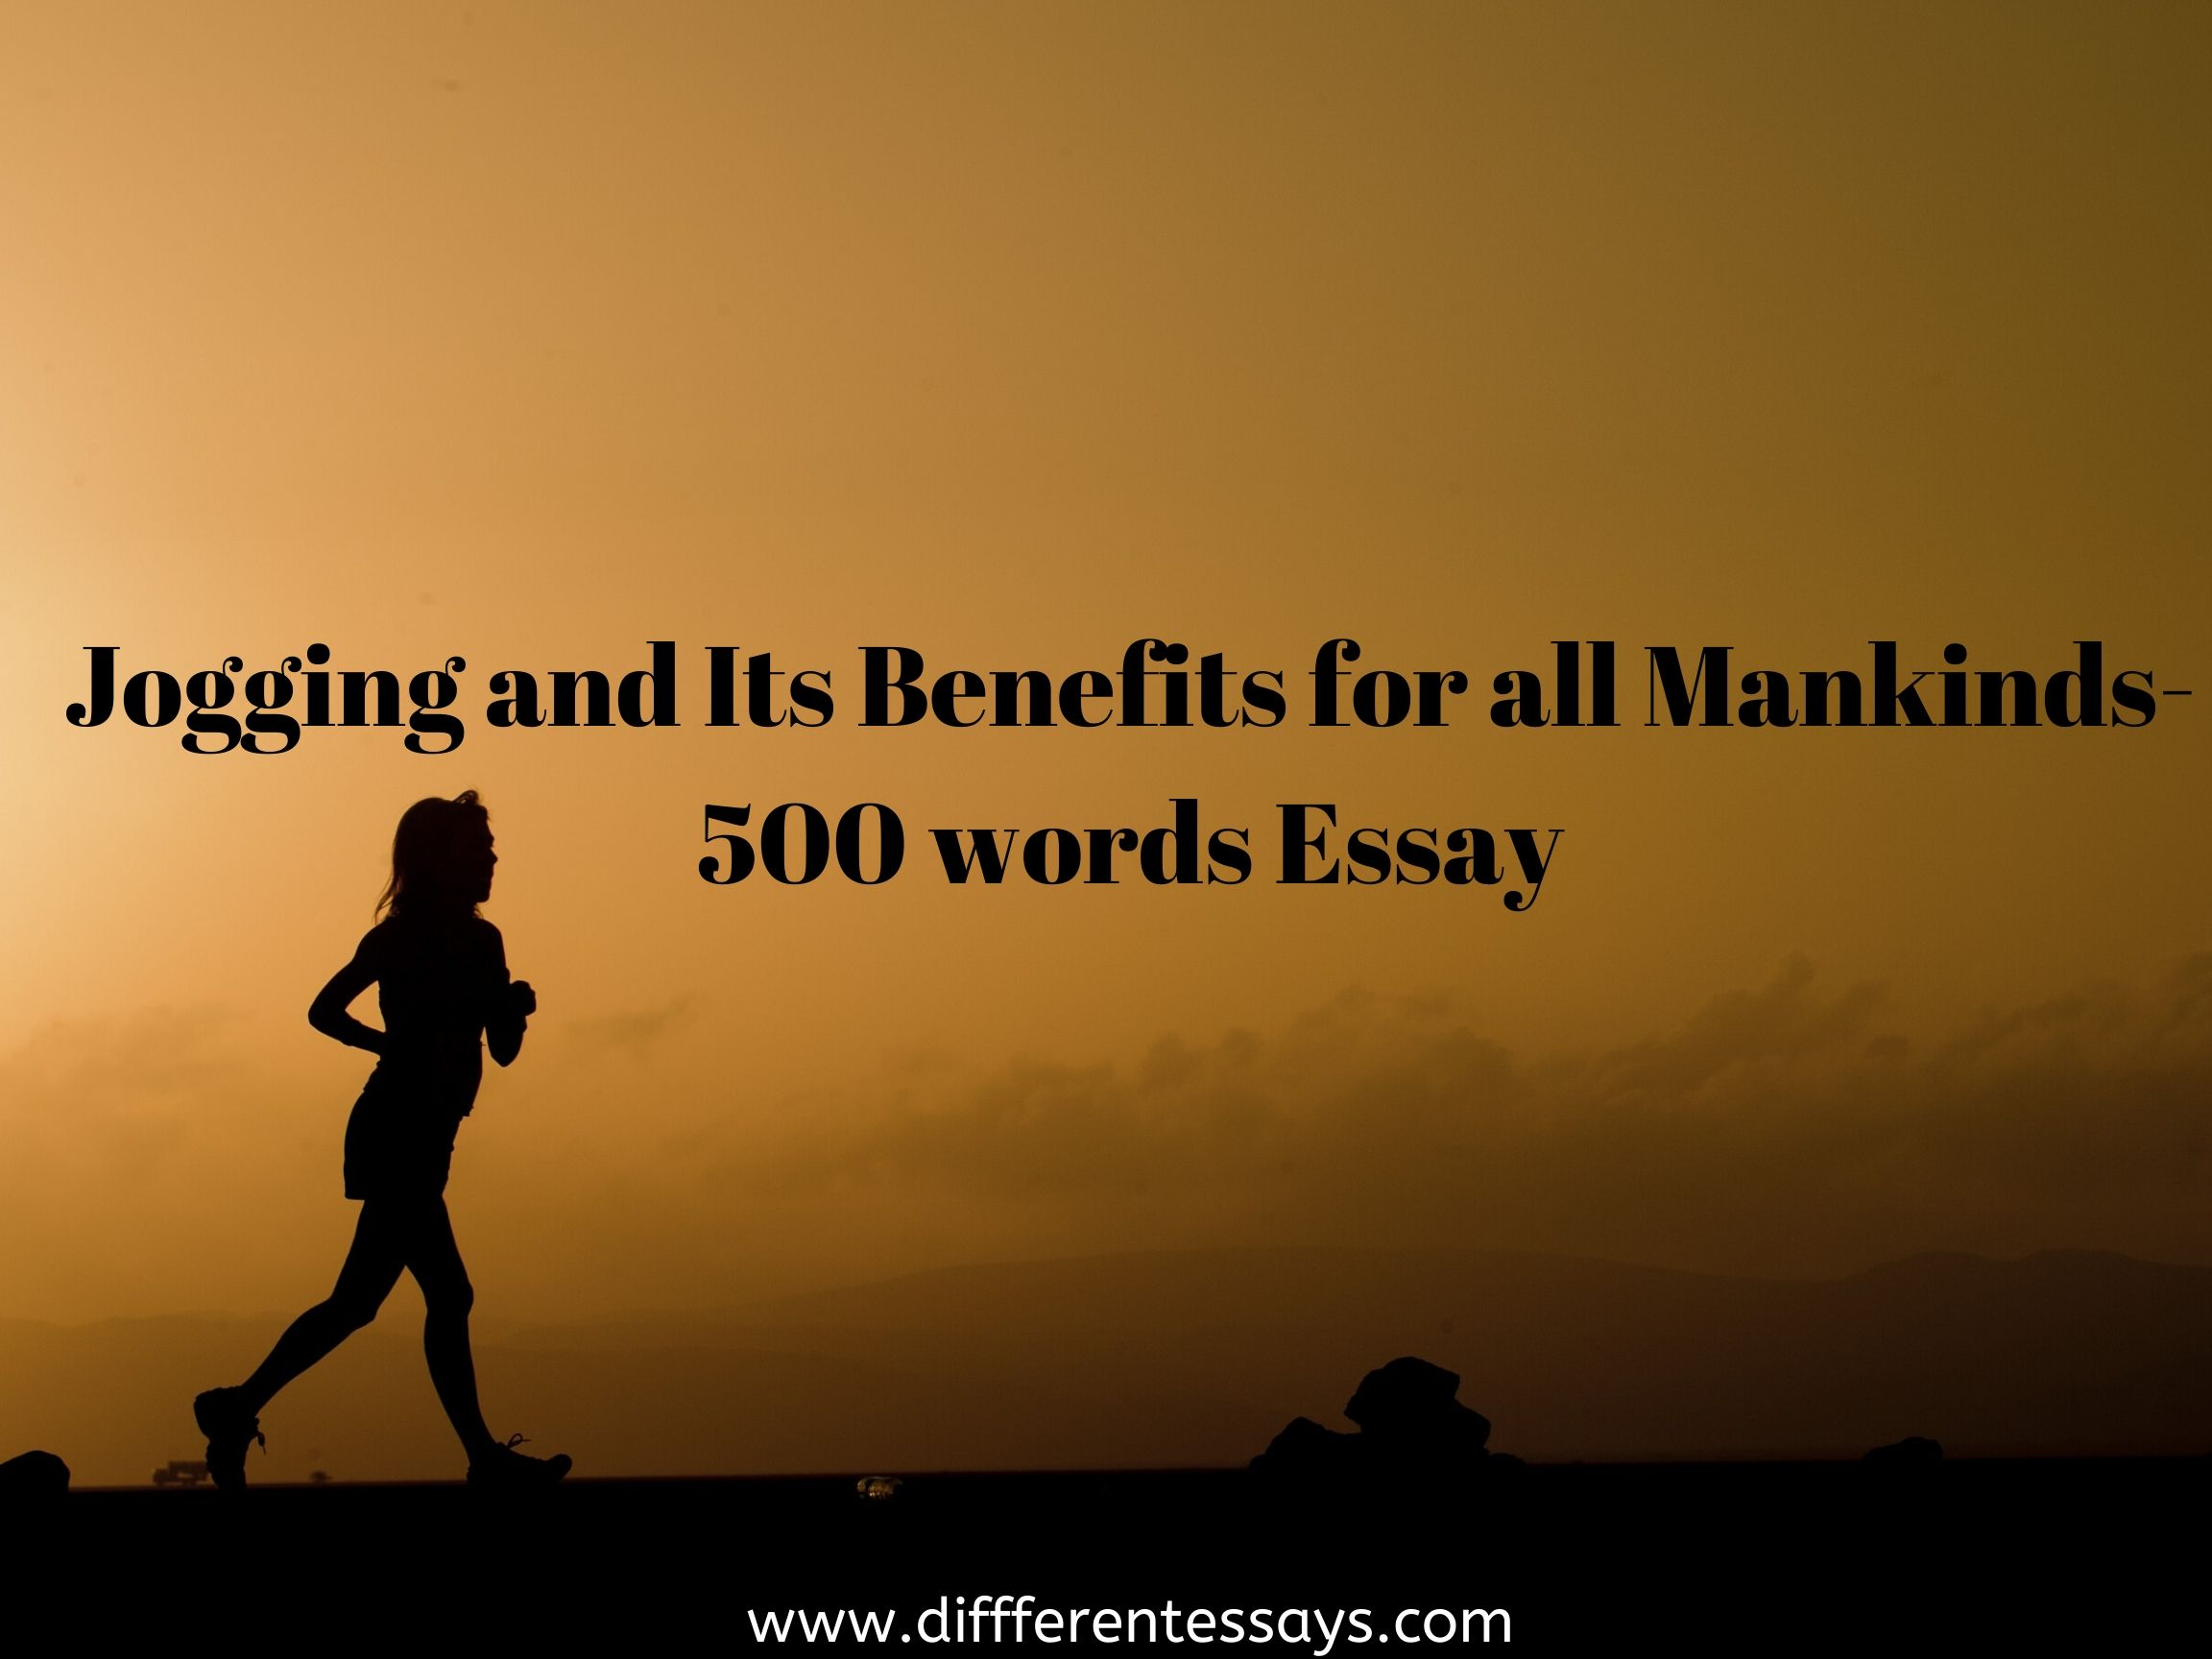 Jogging and Its Benefits for all Mankinds-500 words Essay